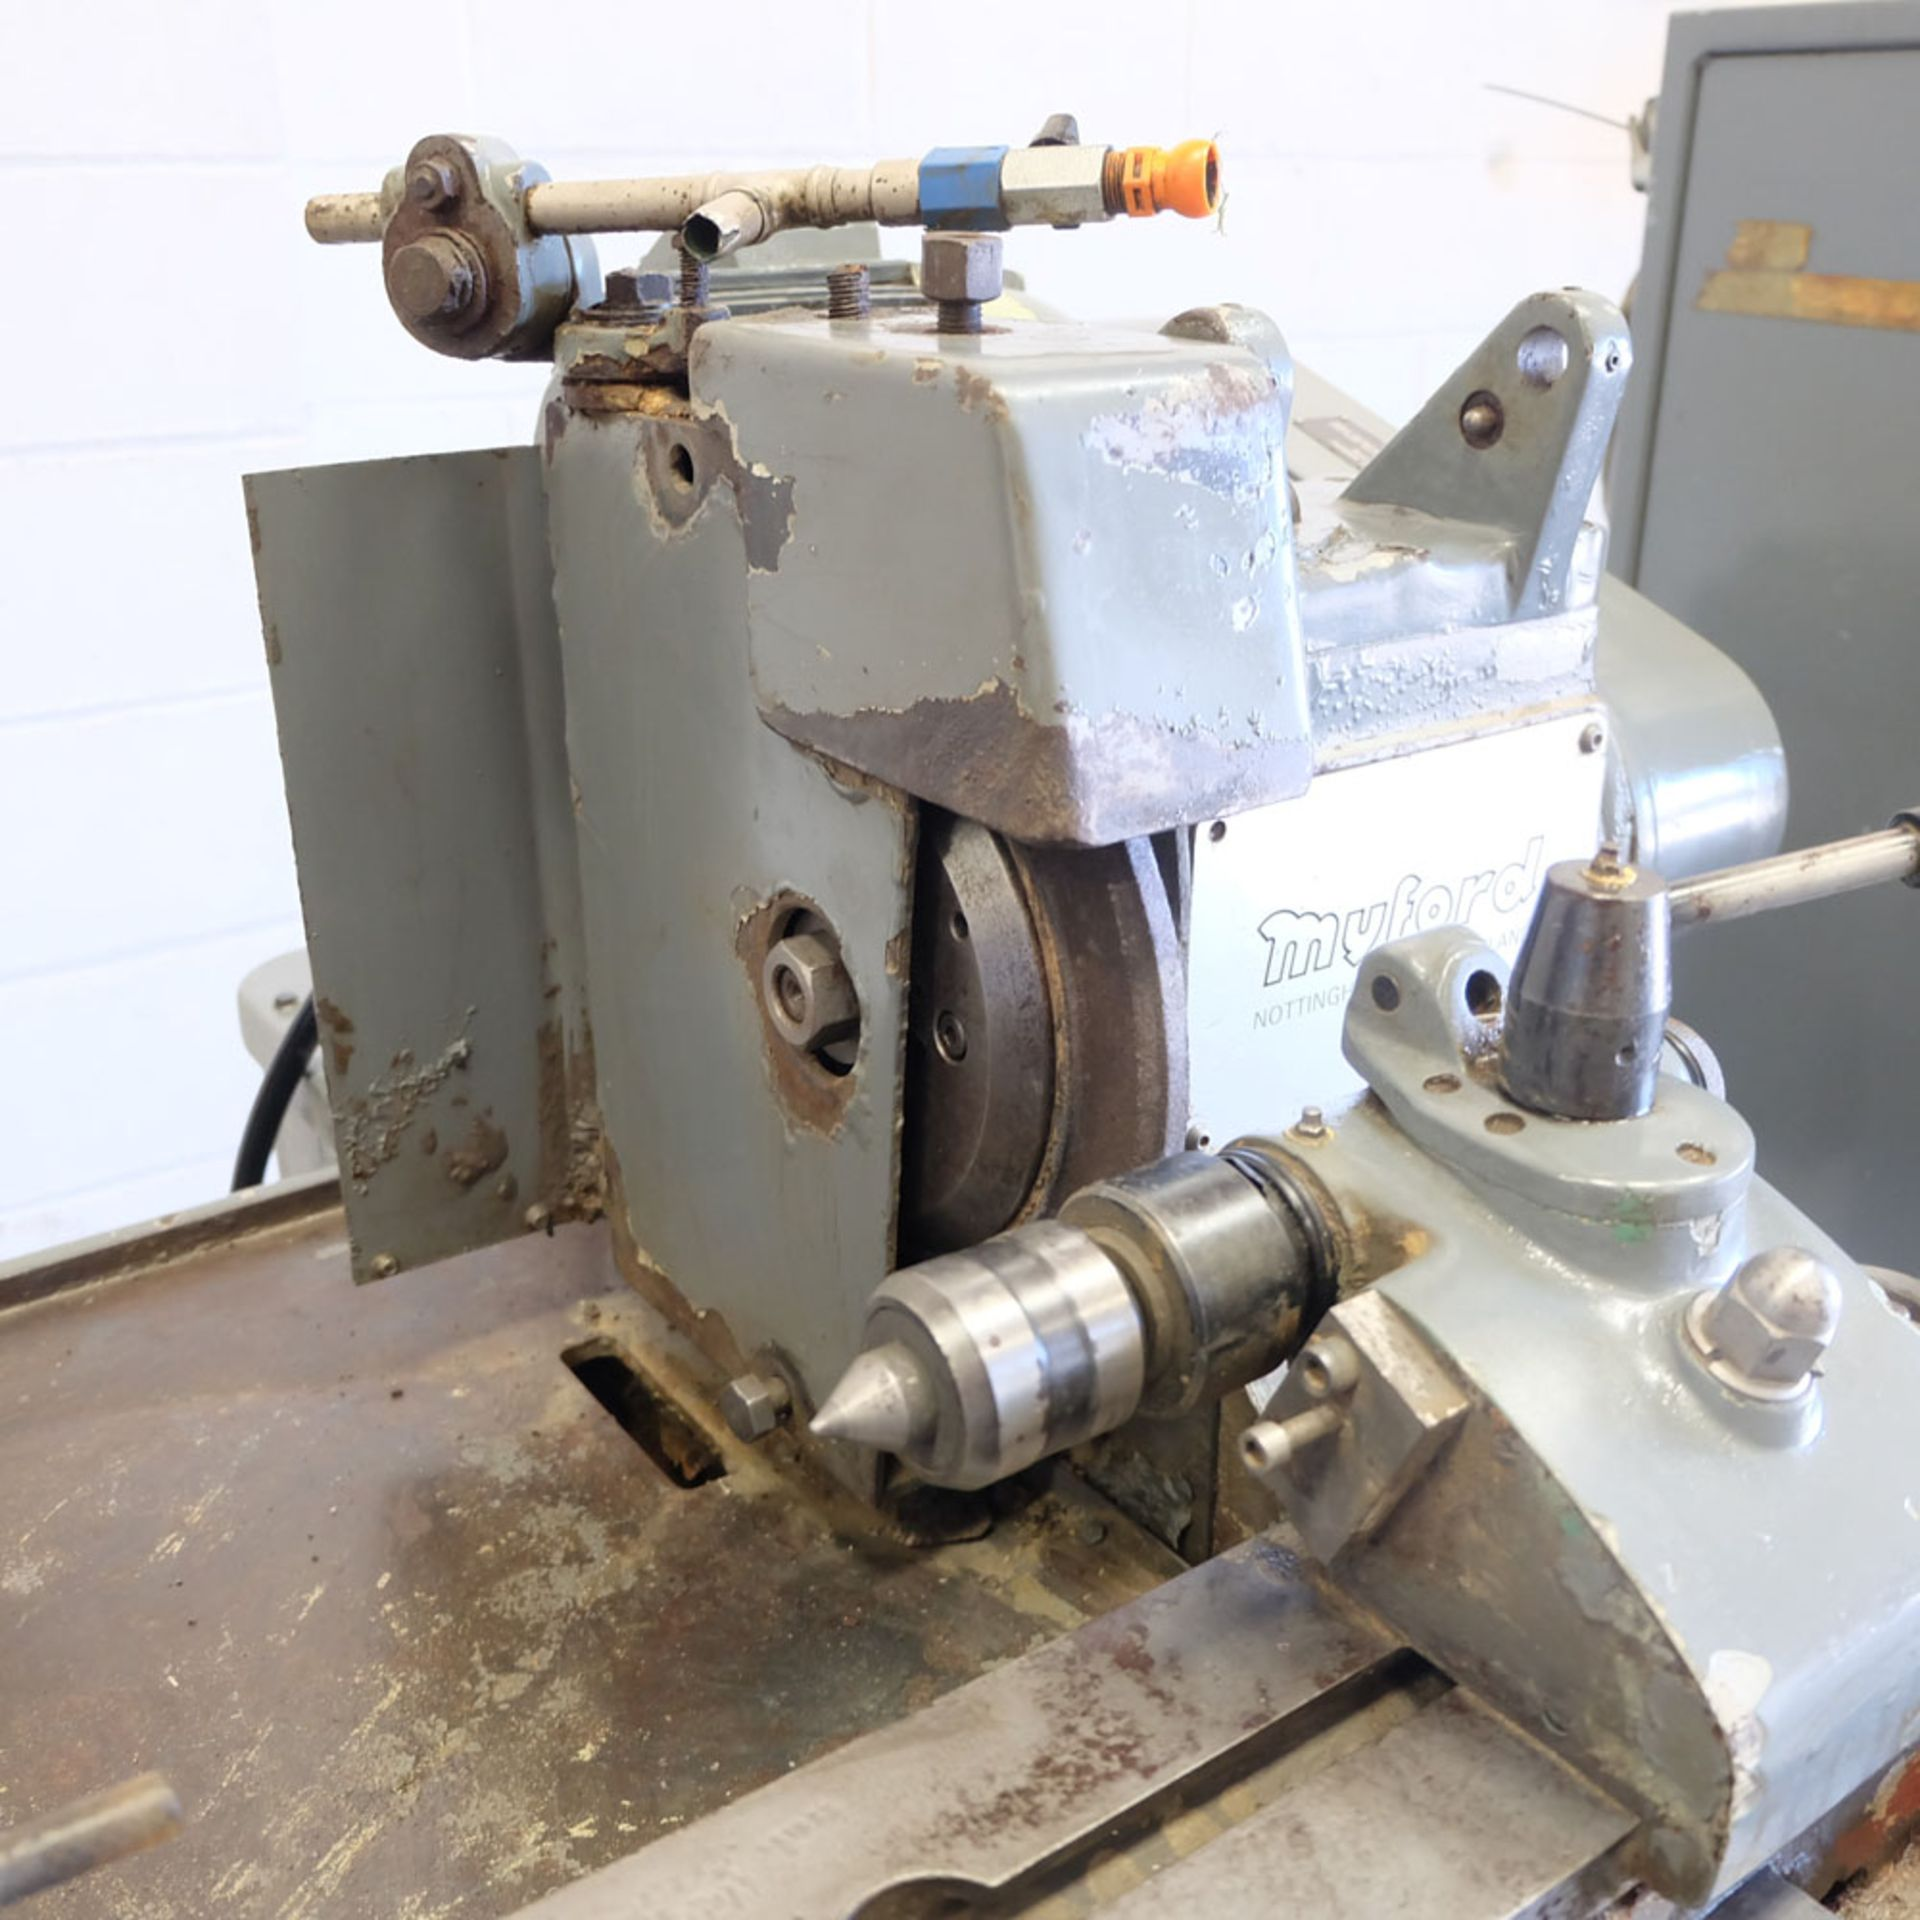 Myford Model MG12-HPT Automatic Cycle Traverse & Plunge Grinder. - Image 4 of 8